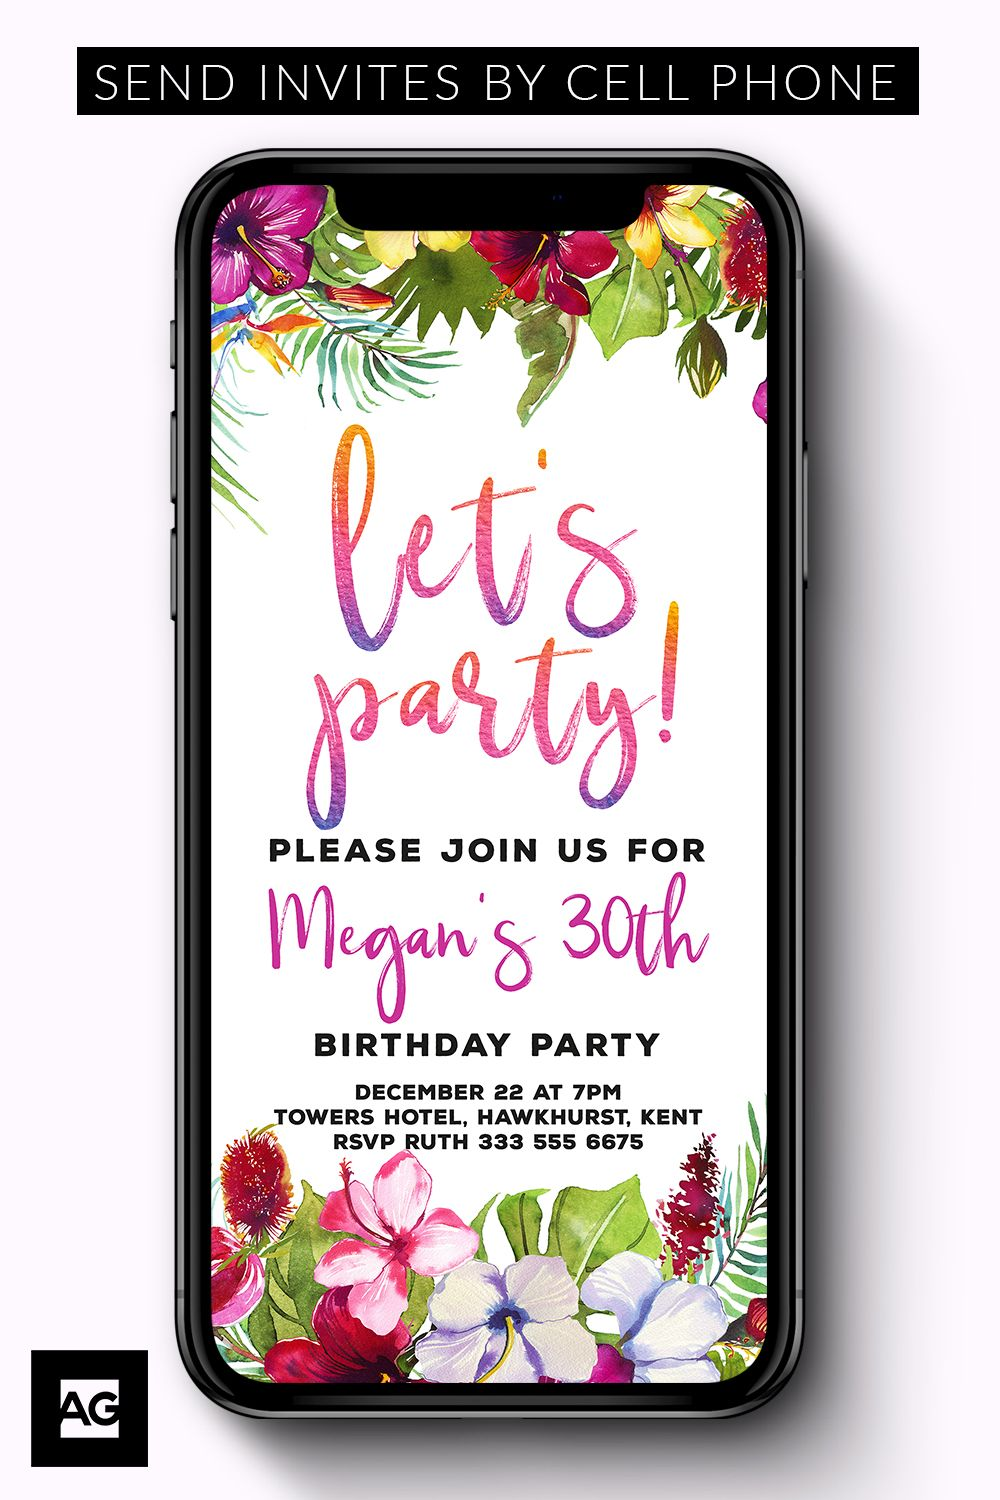 This Electronic Birthday Party Invitation Is An Instant Download And Fully Editable Simply Edit Share Invites With Your IPhone Or Smartphone